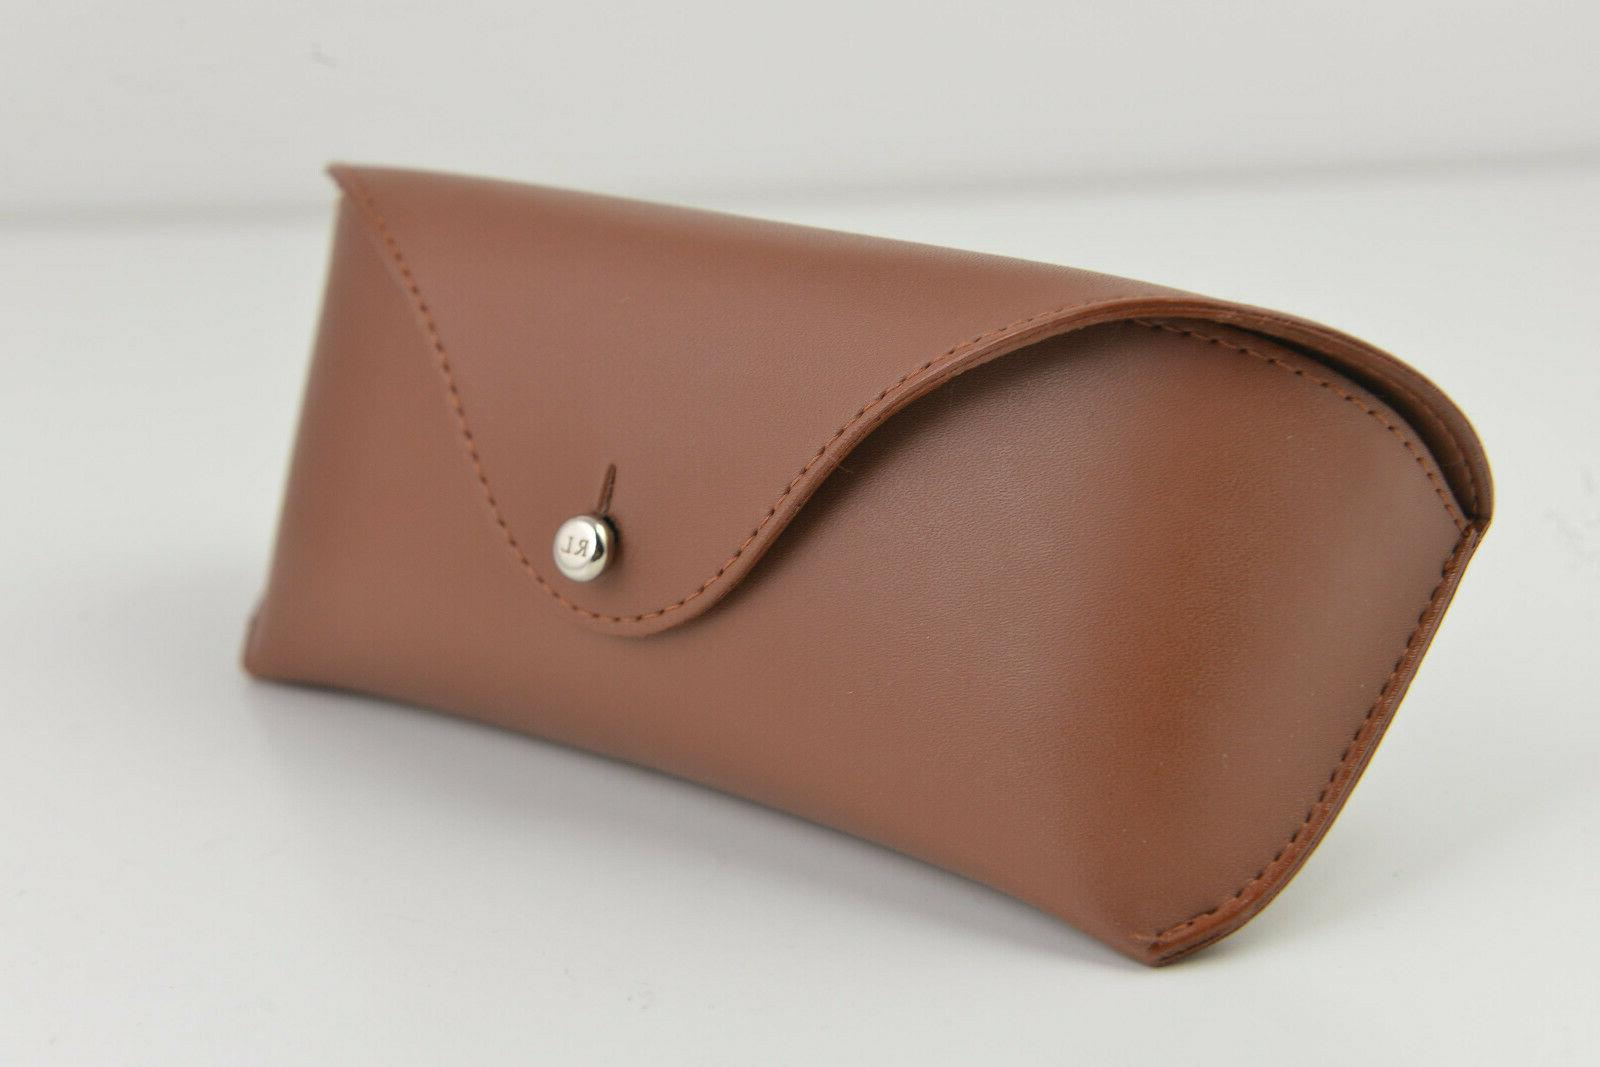 new eyeglasses sunglasses hard case brown leather